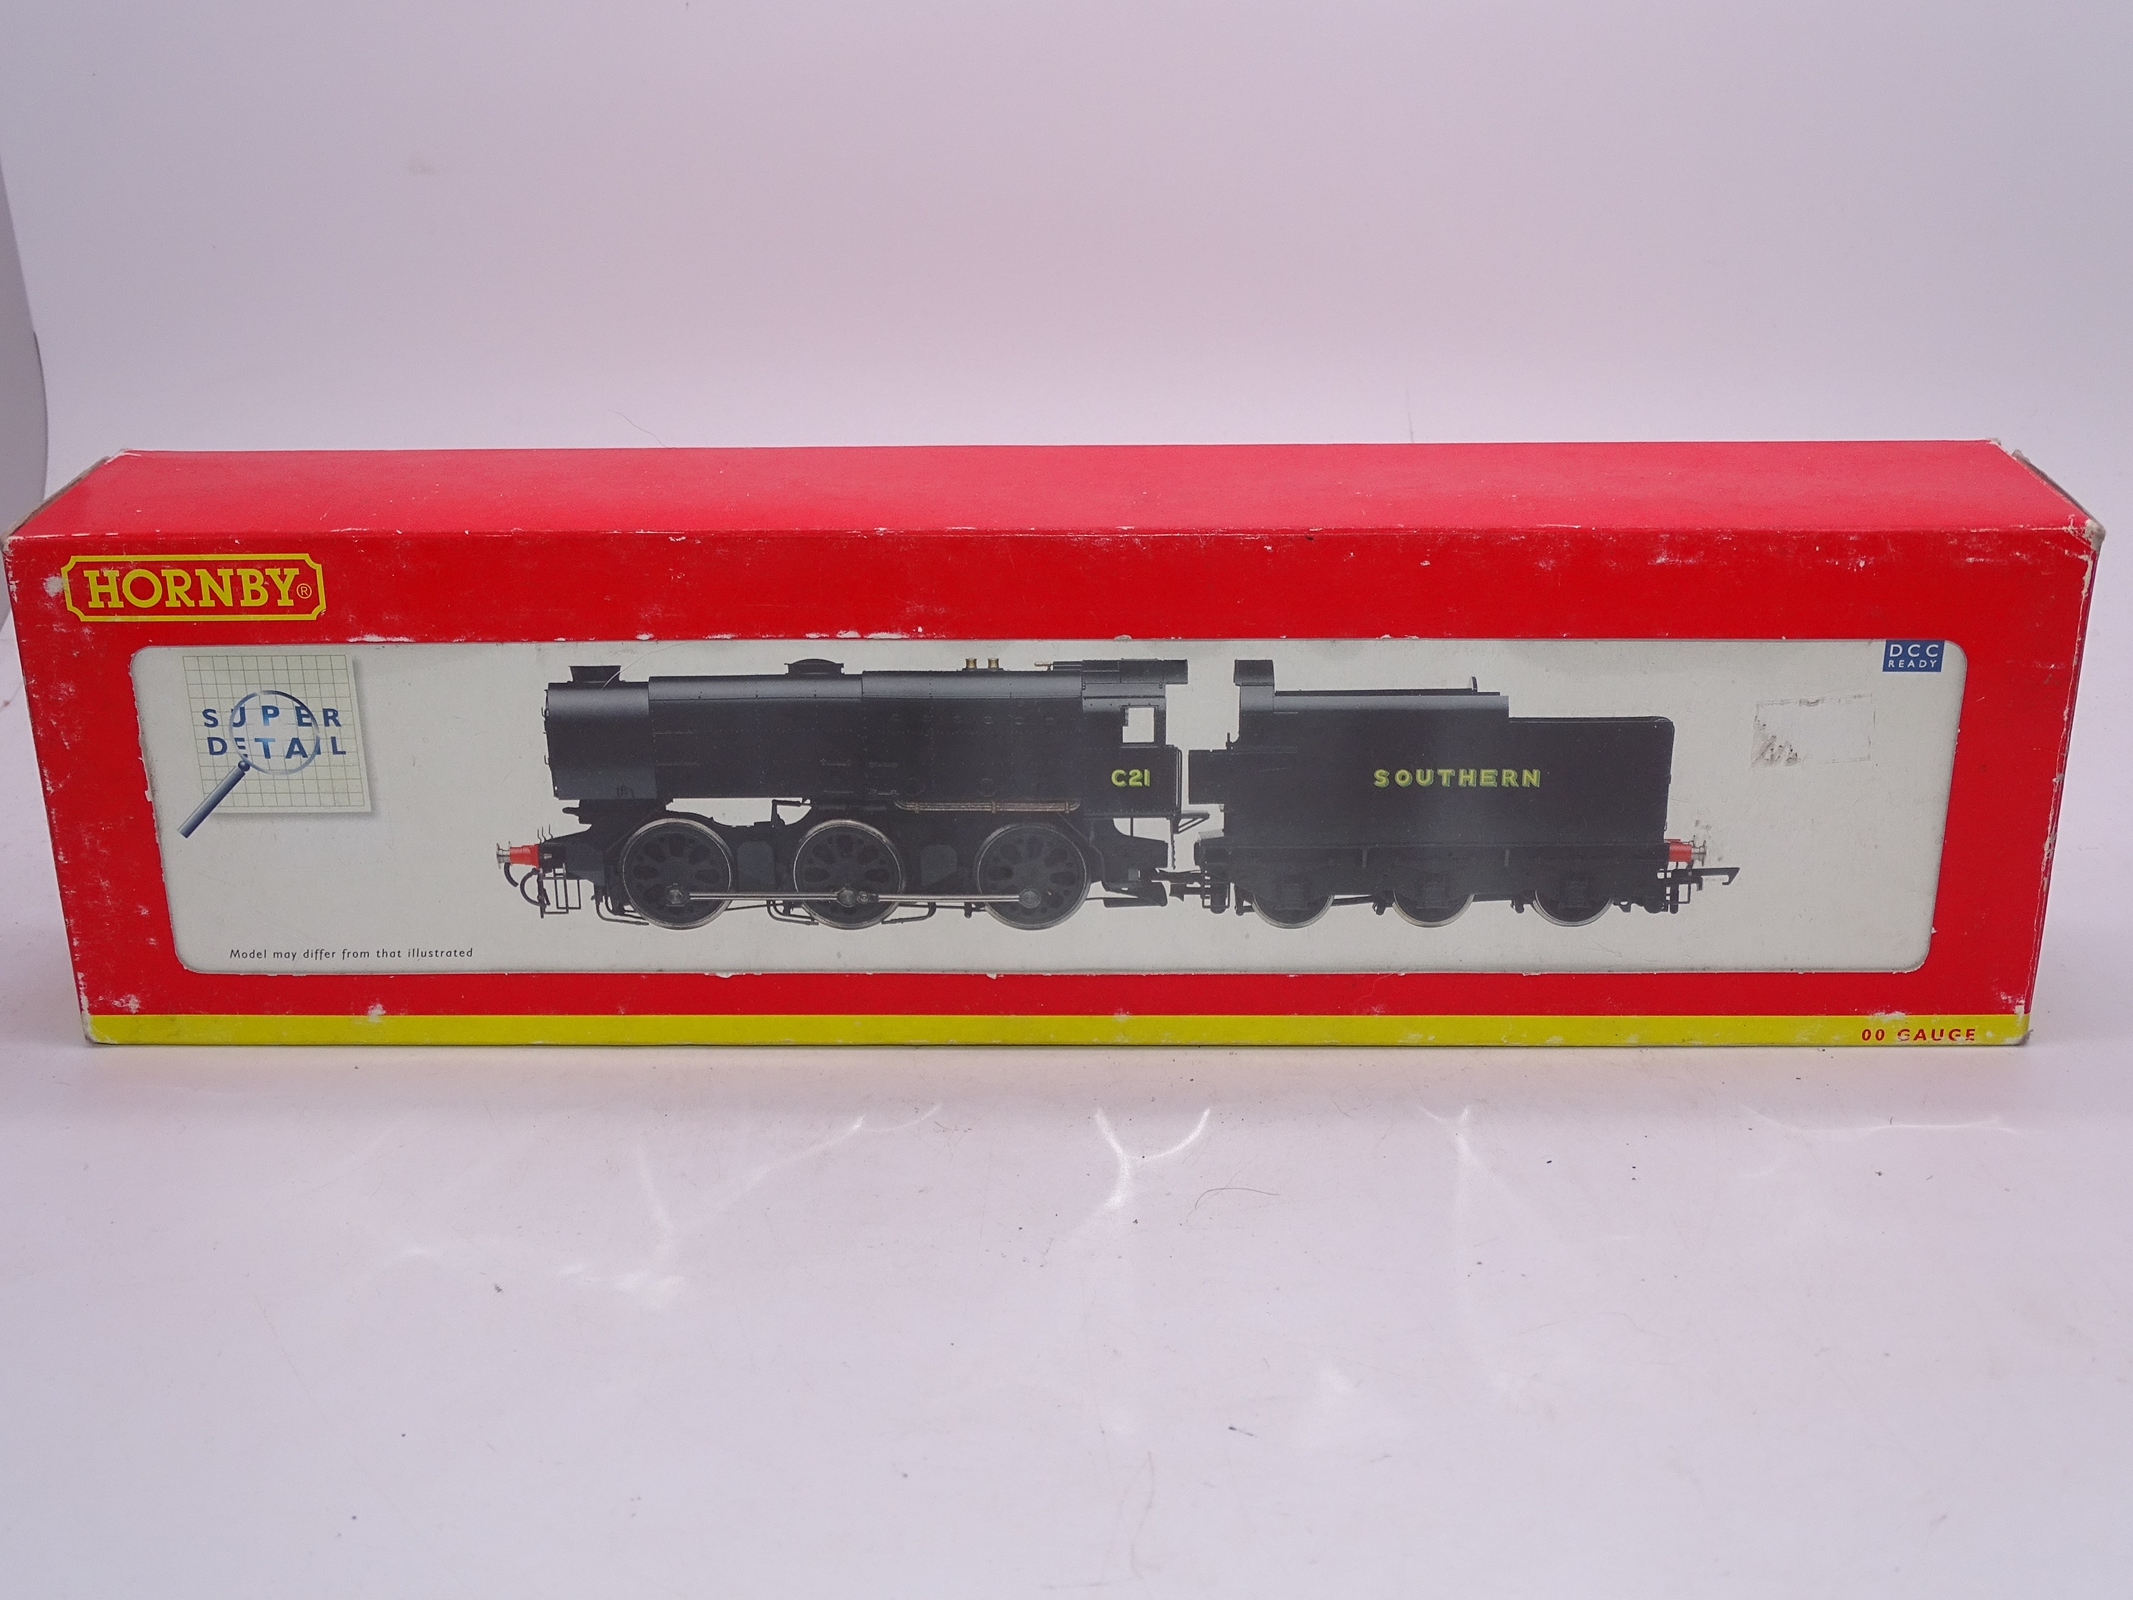 Lot 46 - OO Gauge -A Hornby R2343A Class Q1 steam locomotive in Southern Railway livery - numbered C21 - VG